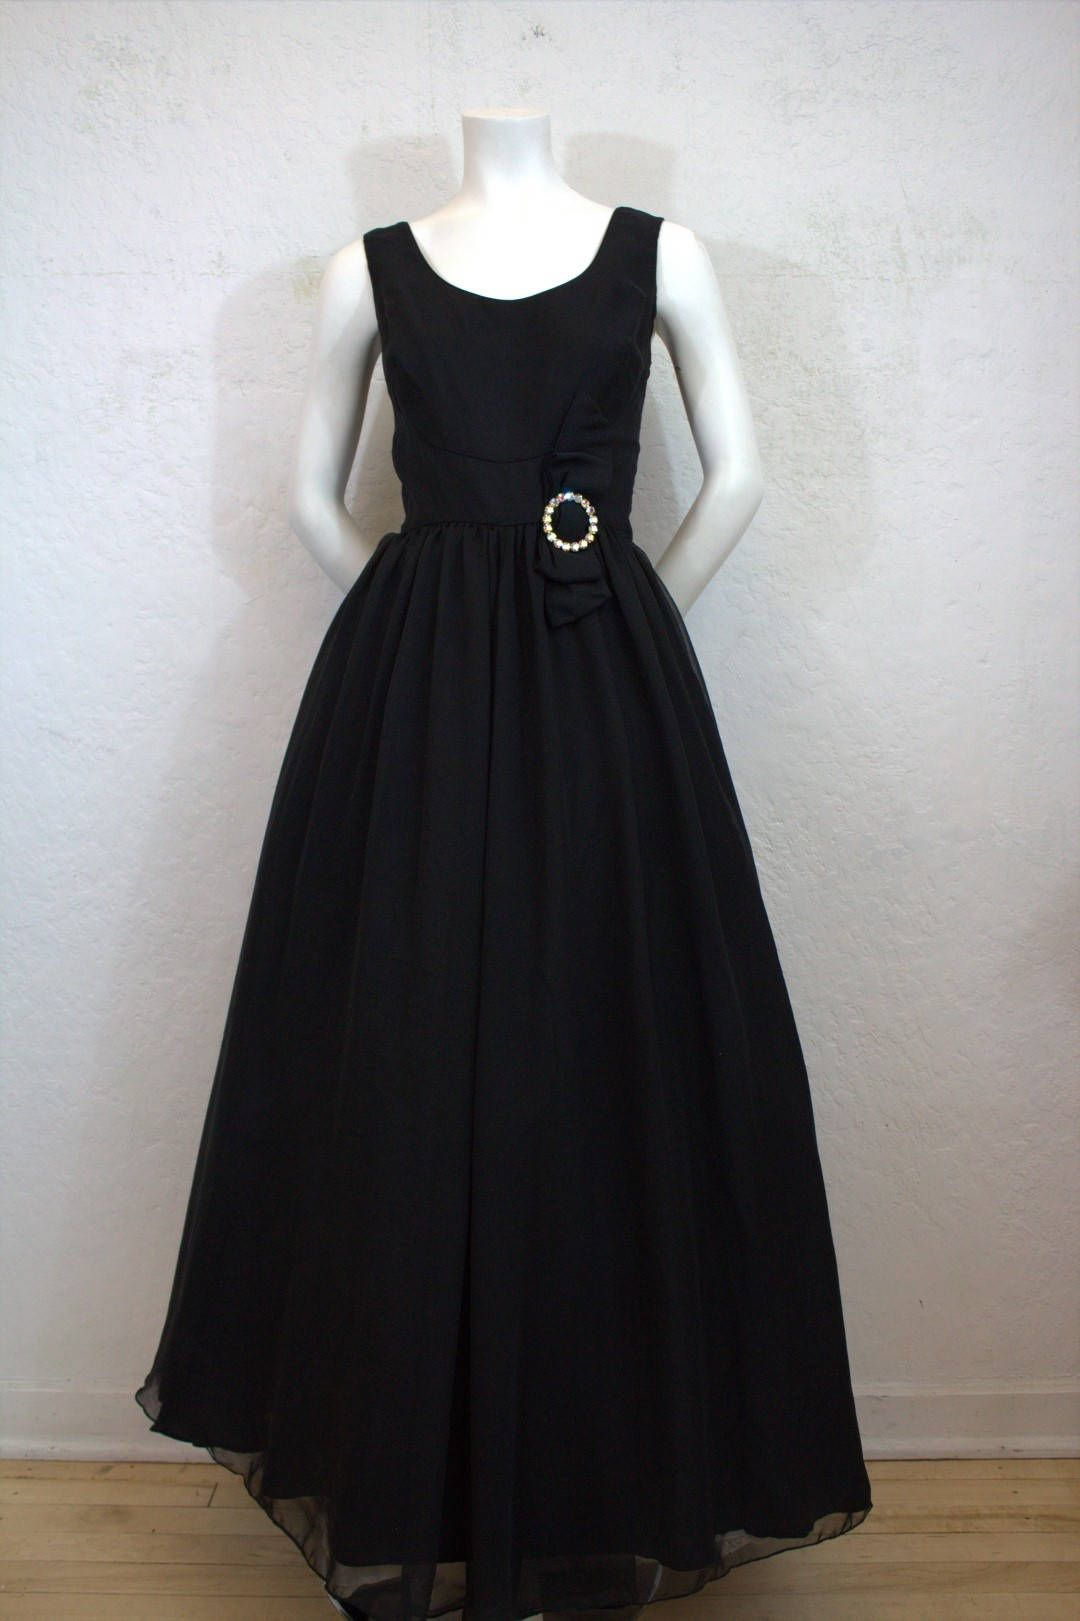 1960 S S Eisenberg Long Black Formal Dress Gown With Rhinestone Buckle On Bow Size 29 Long Black Dress Formal Formal Dresses Gowns Black Dress Formal [ 1621 x 1080 Pixel ]